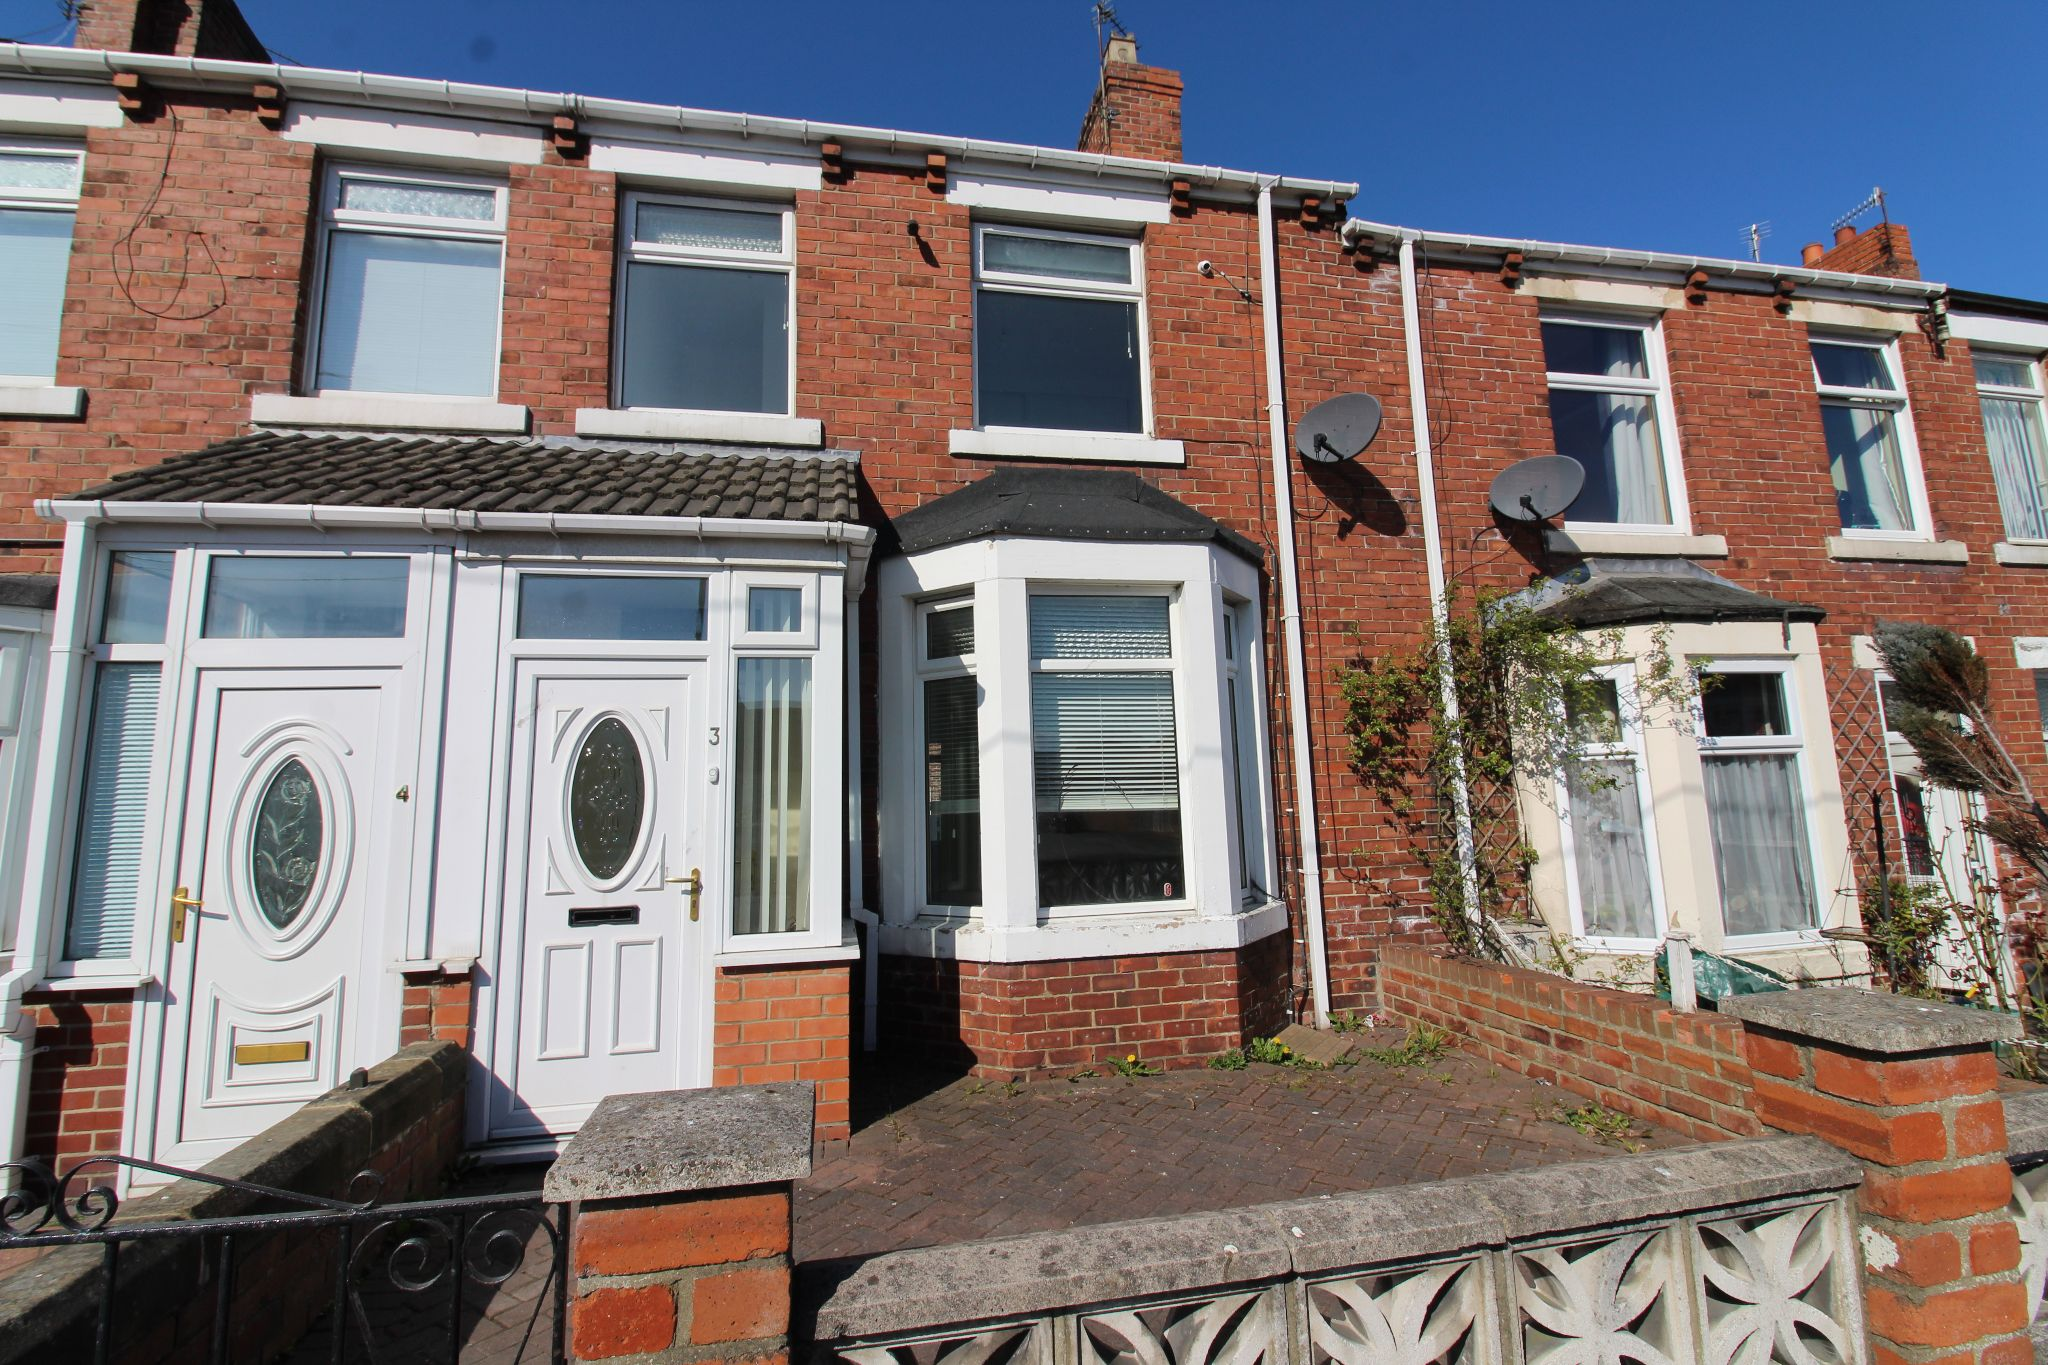 3 bedroom mid terraced house To Let in Durham - Photograph 2.